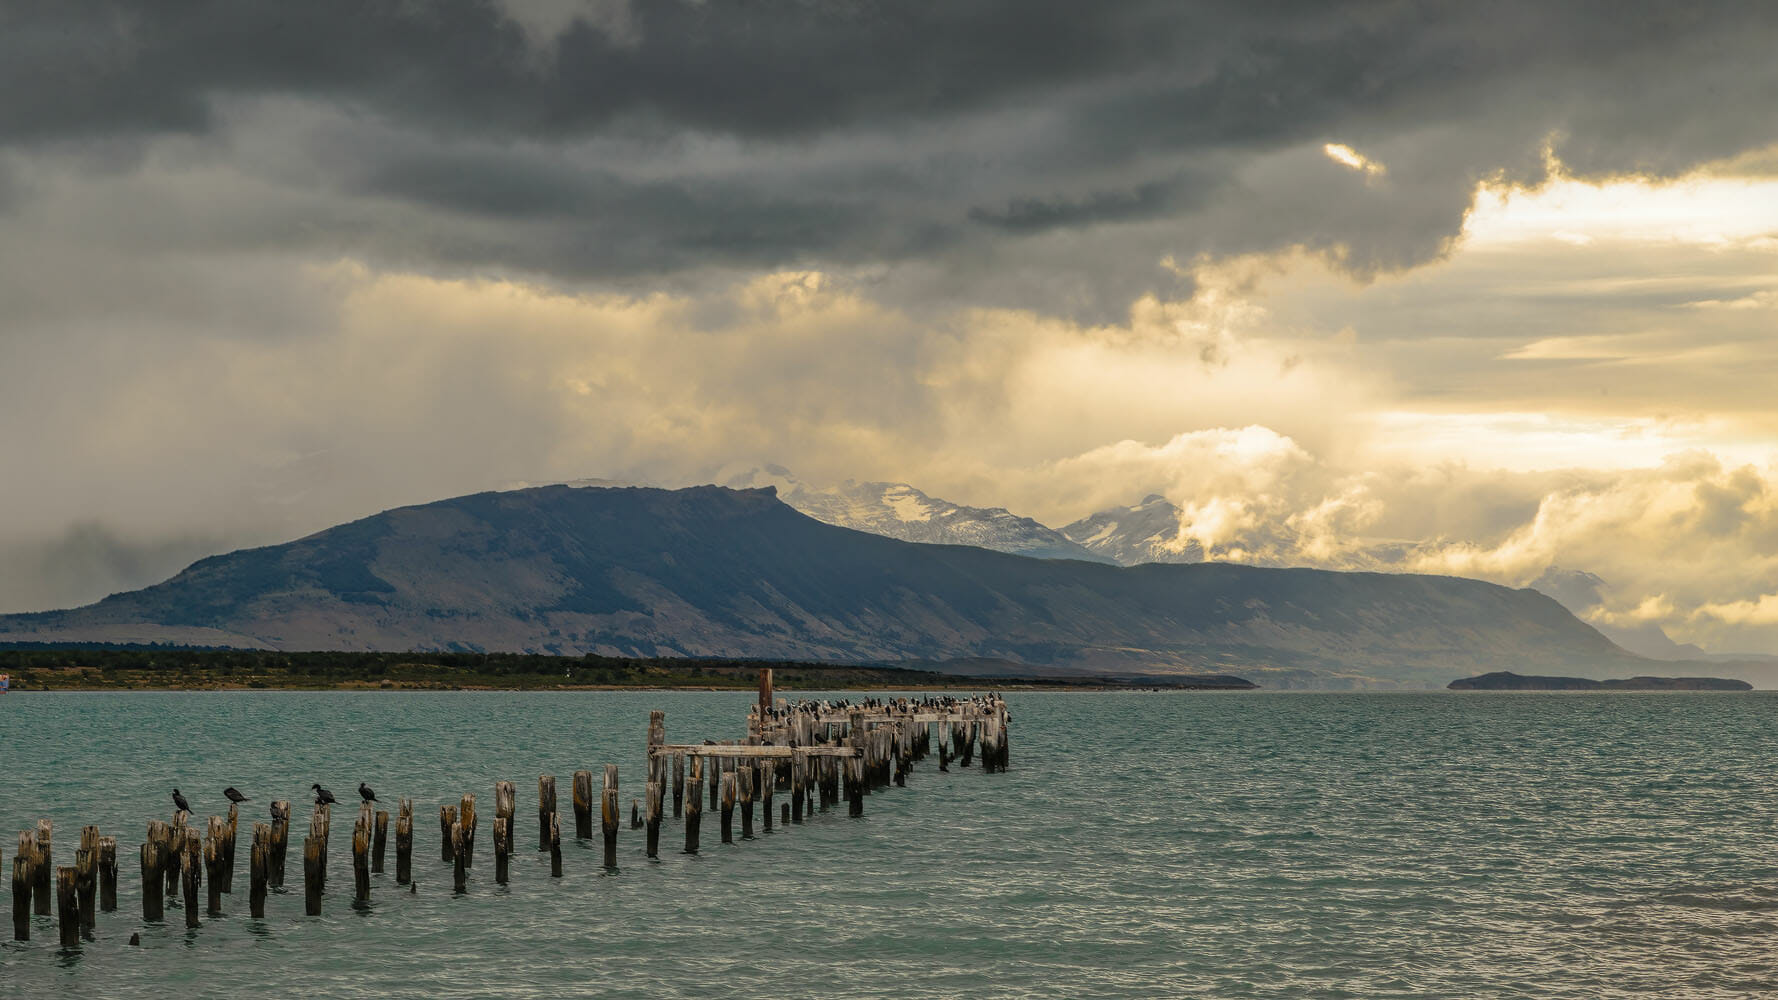 Abandoned wooden pier at Puerto Natales - Chilian Patagonia